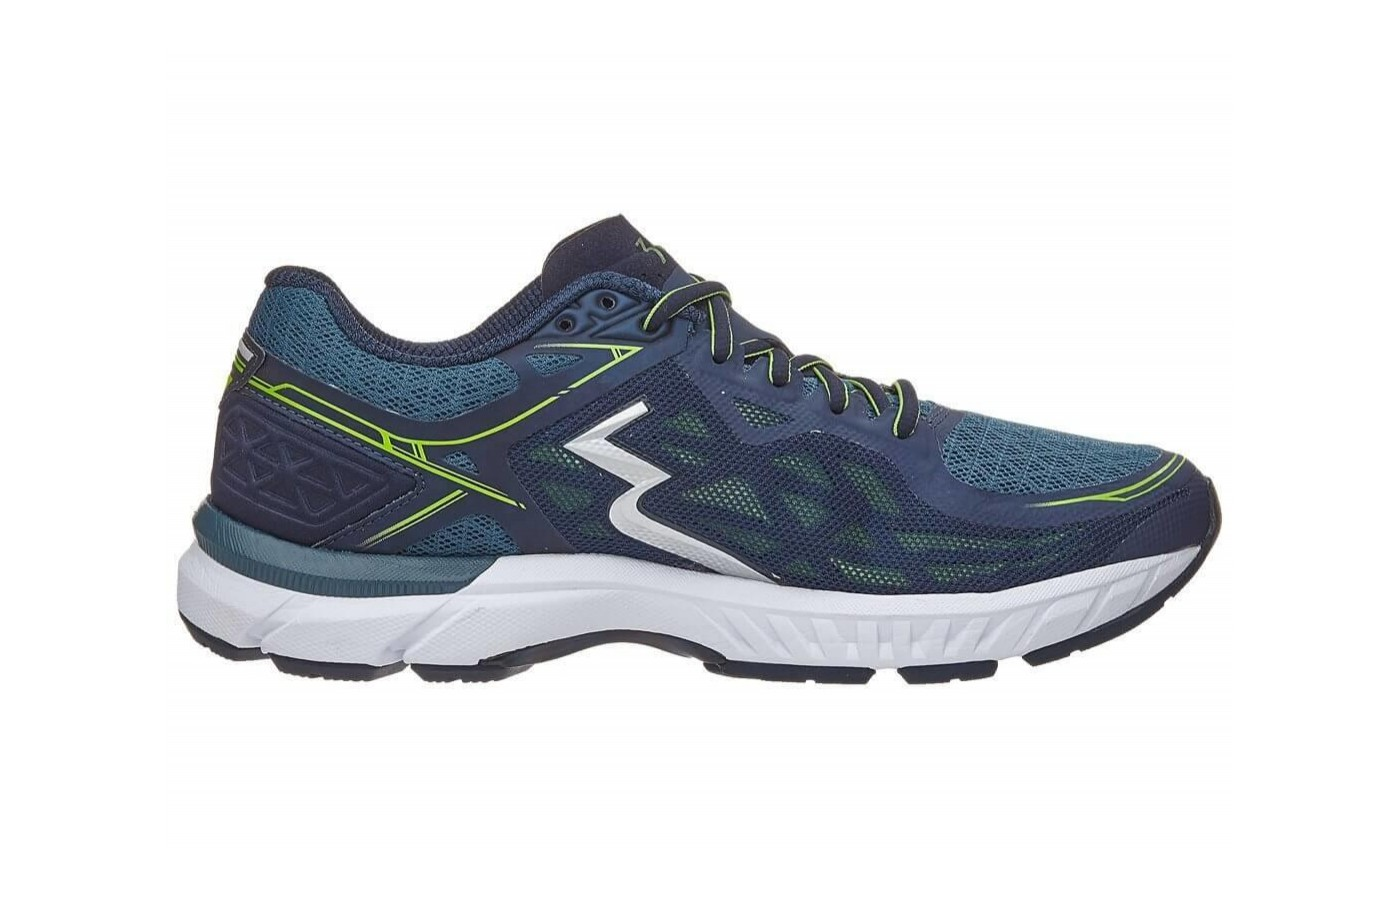 The 361 Spire 2 has QU!KFOAM cushioning in its midsole